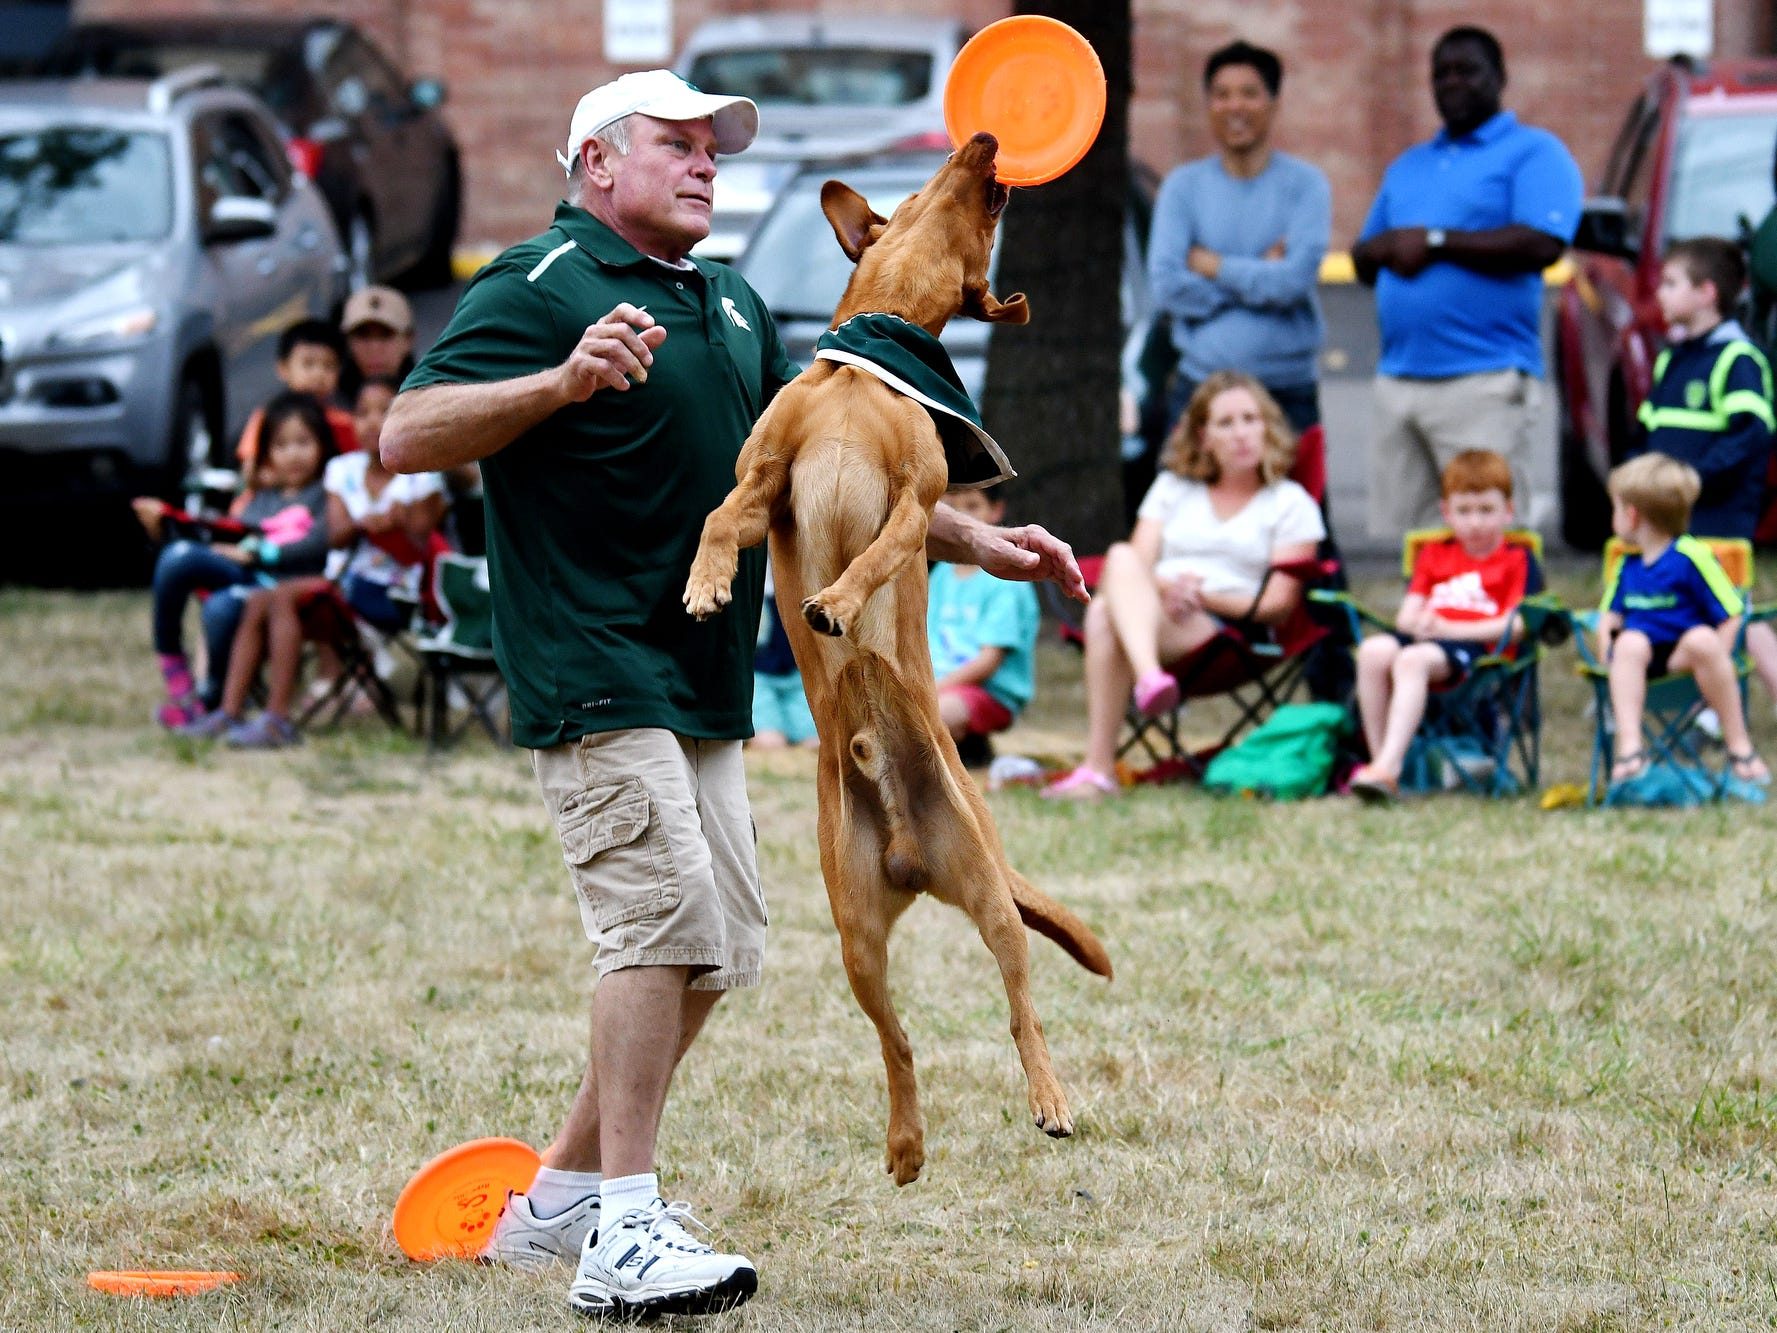 Zeke the Wonderdog IV catches a flying disc in his mouth as his caretaker Jim Foley watches during Play in the Park on Tuesday, July 31, 2018, at Valley Court Park in East Lansing.